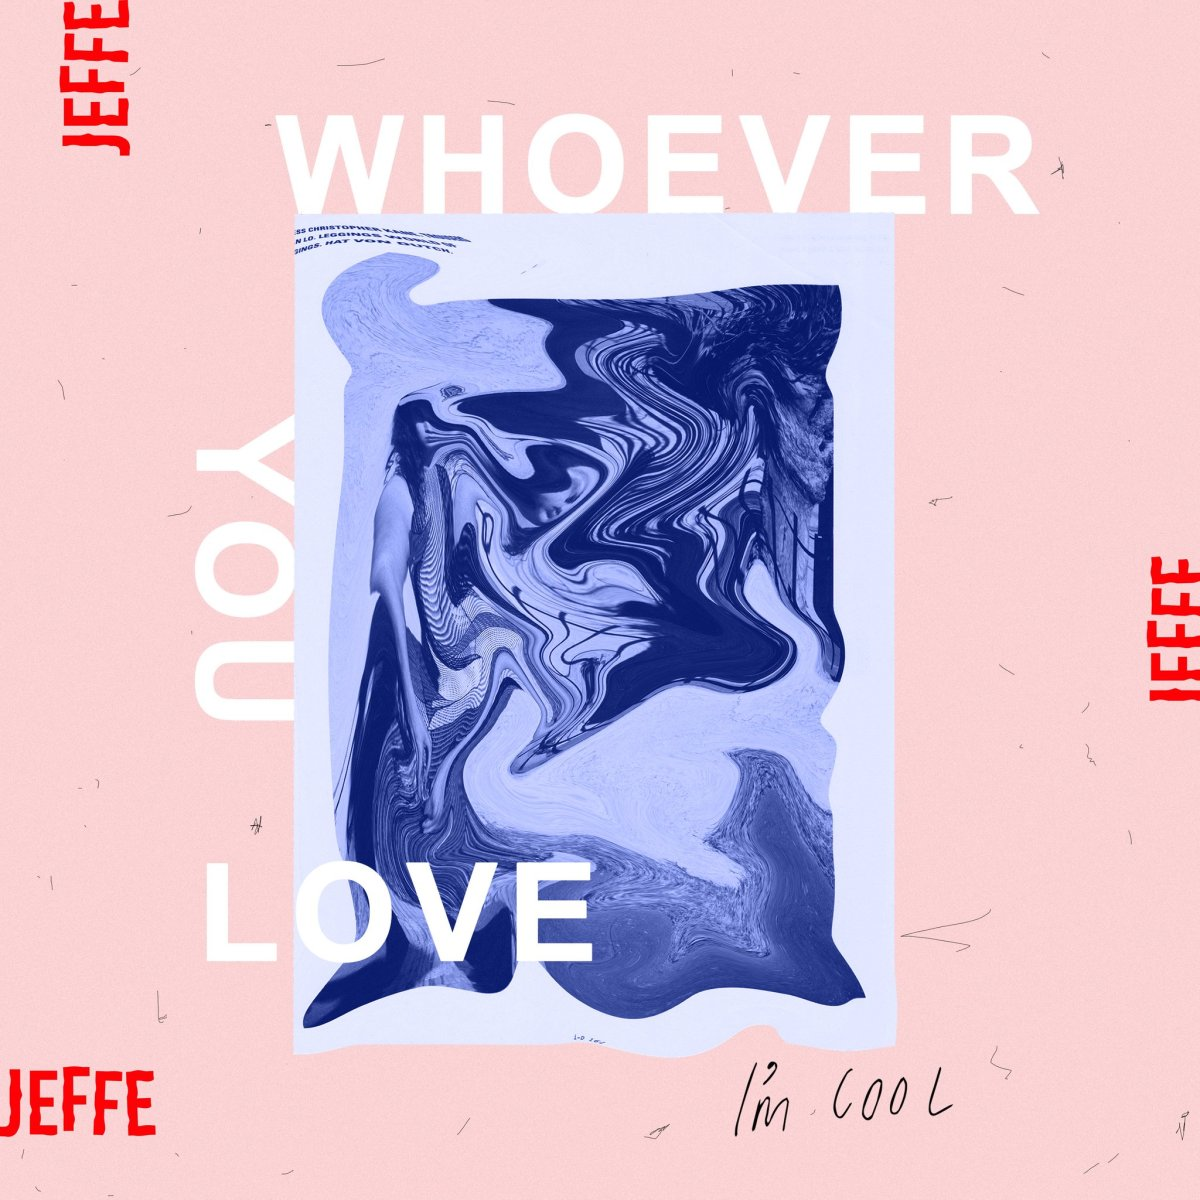 Jeffe - Whoever You Love I'm Cool art